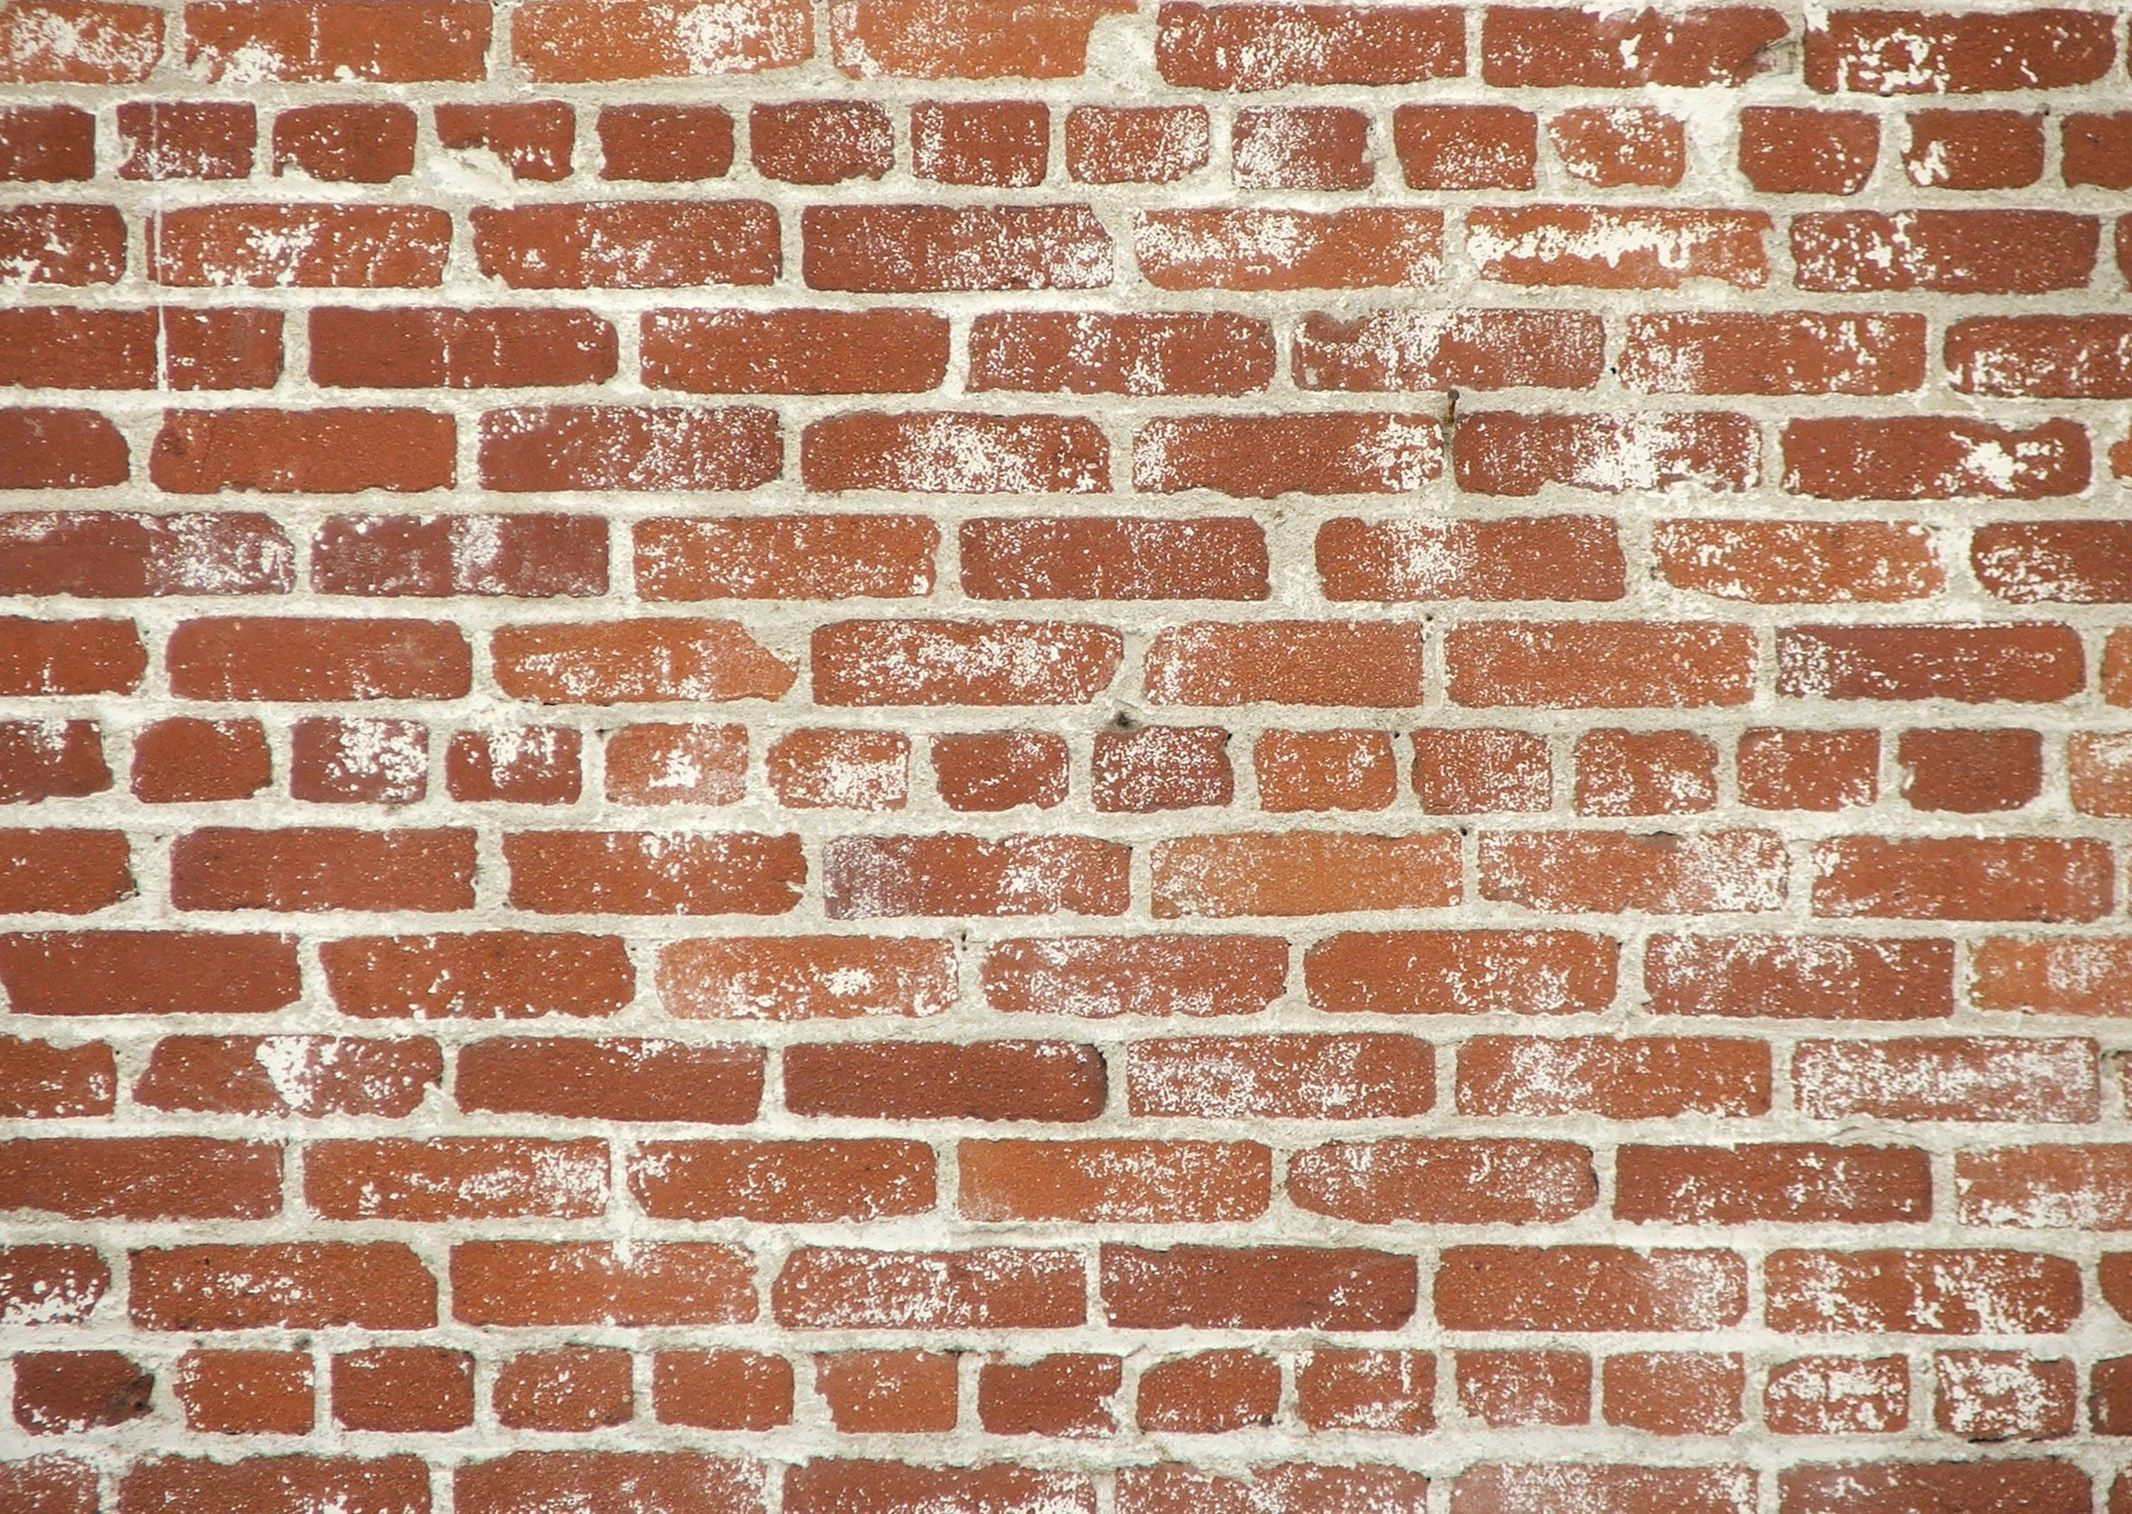 Brick wall texture download photo image bricks brick for Wall to wall wallpaper